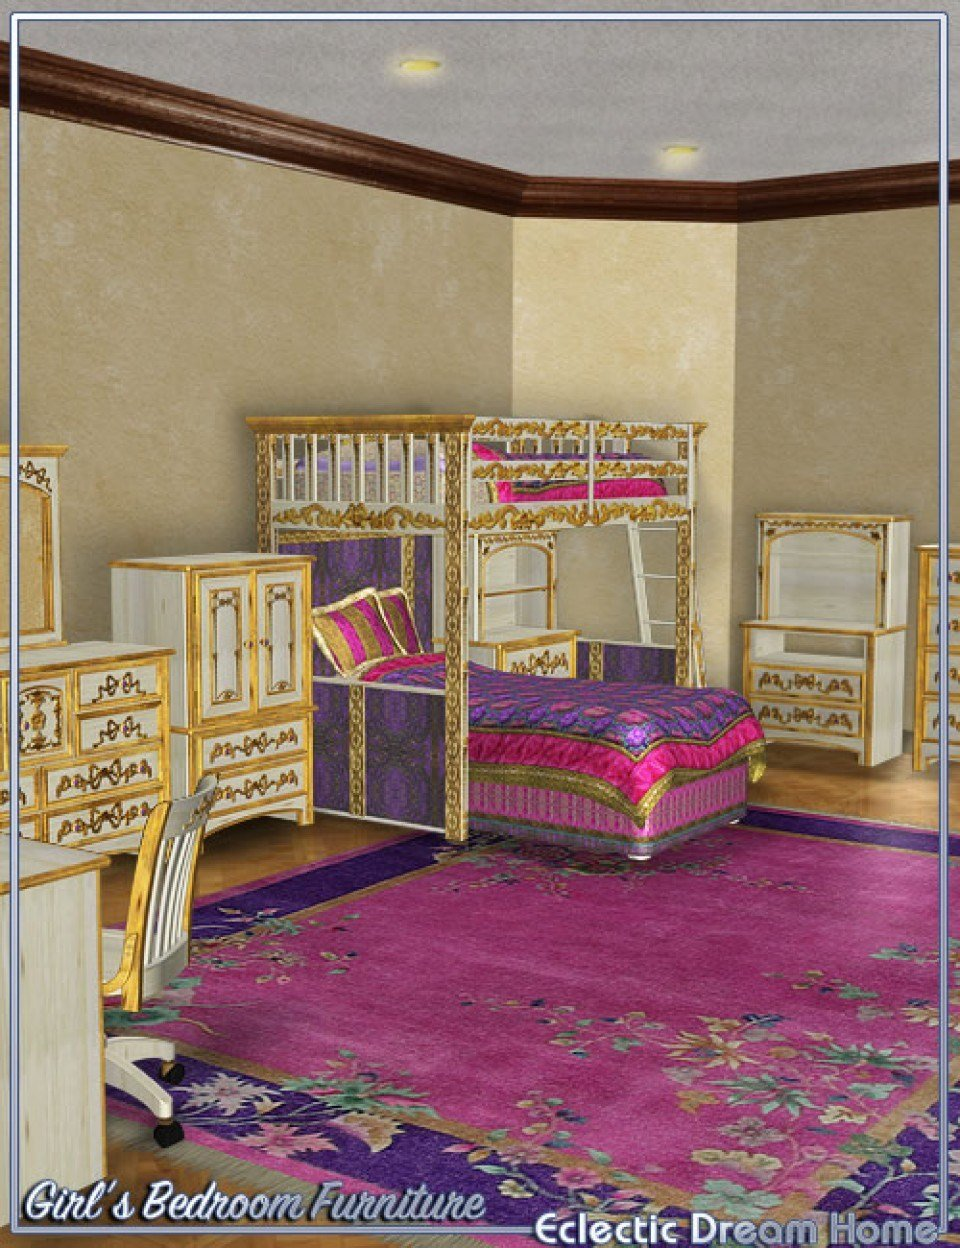 Best Dream Home Eclectic Girls Bedroom Furniture 3D Models With Pictures